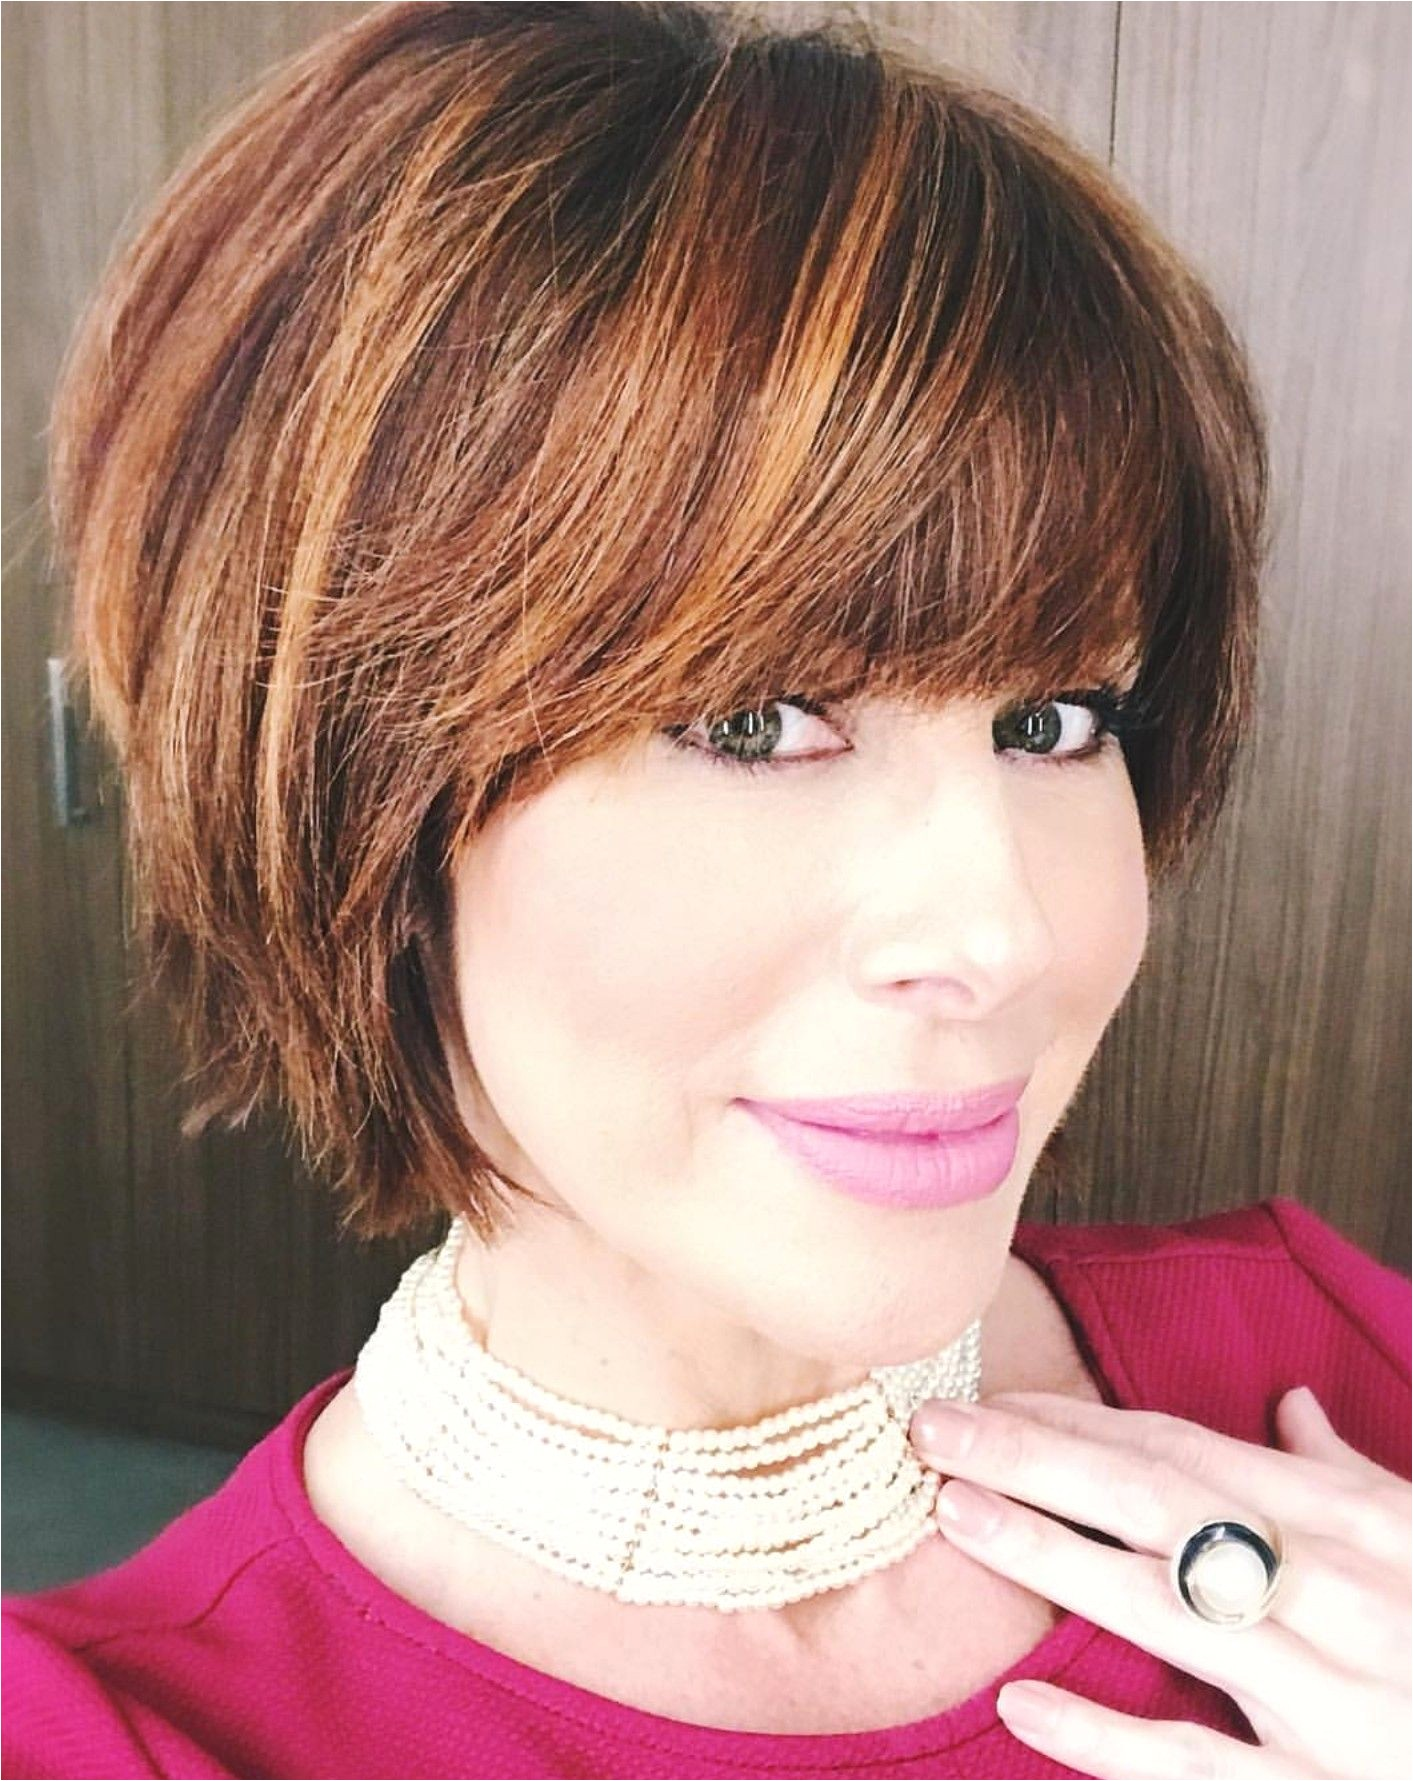 Short Female Haircuts 60s Hairstyles for Medium Hair Awesome 30 Best Jane Fonda Hairstyles